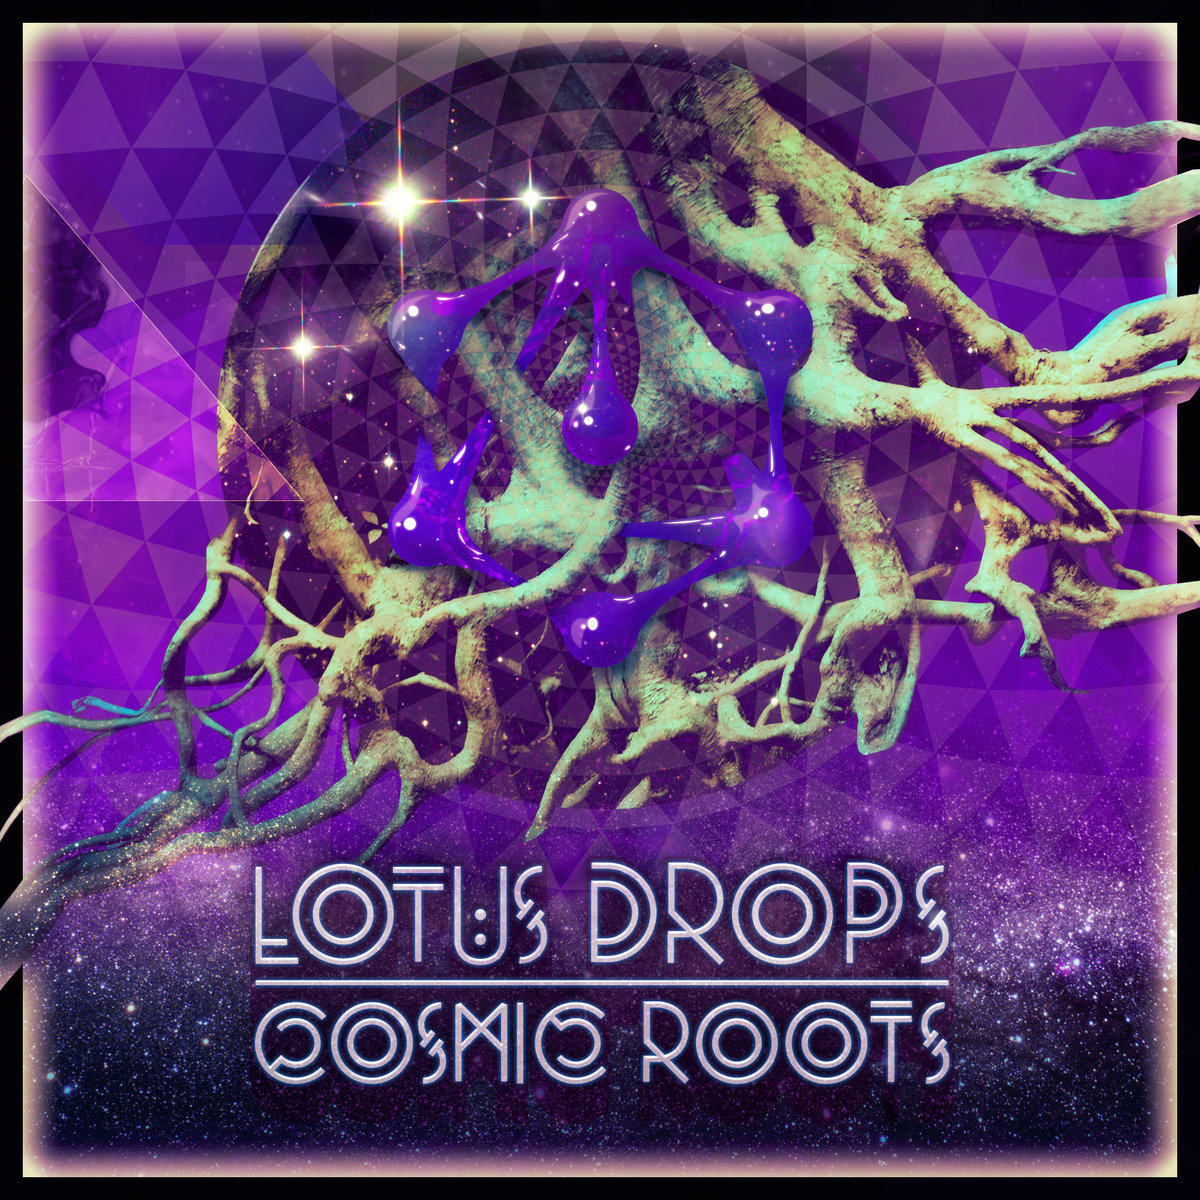 Lotus Drops - Cosmic Roots @ 'Cosmic Roots' album (electronic, dubstep)